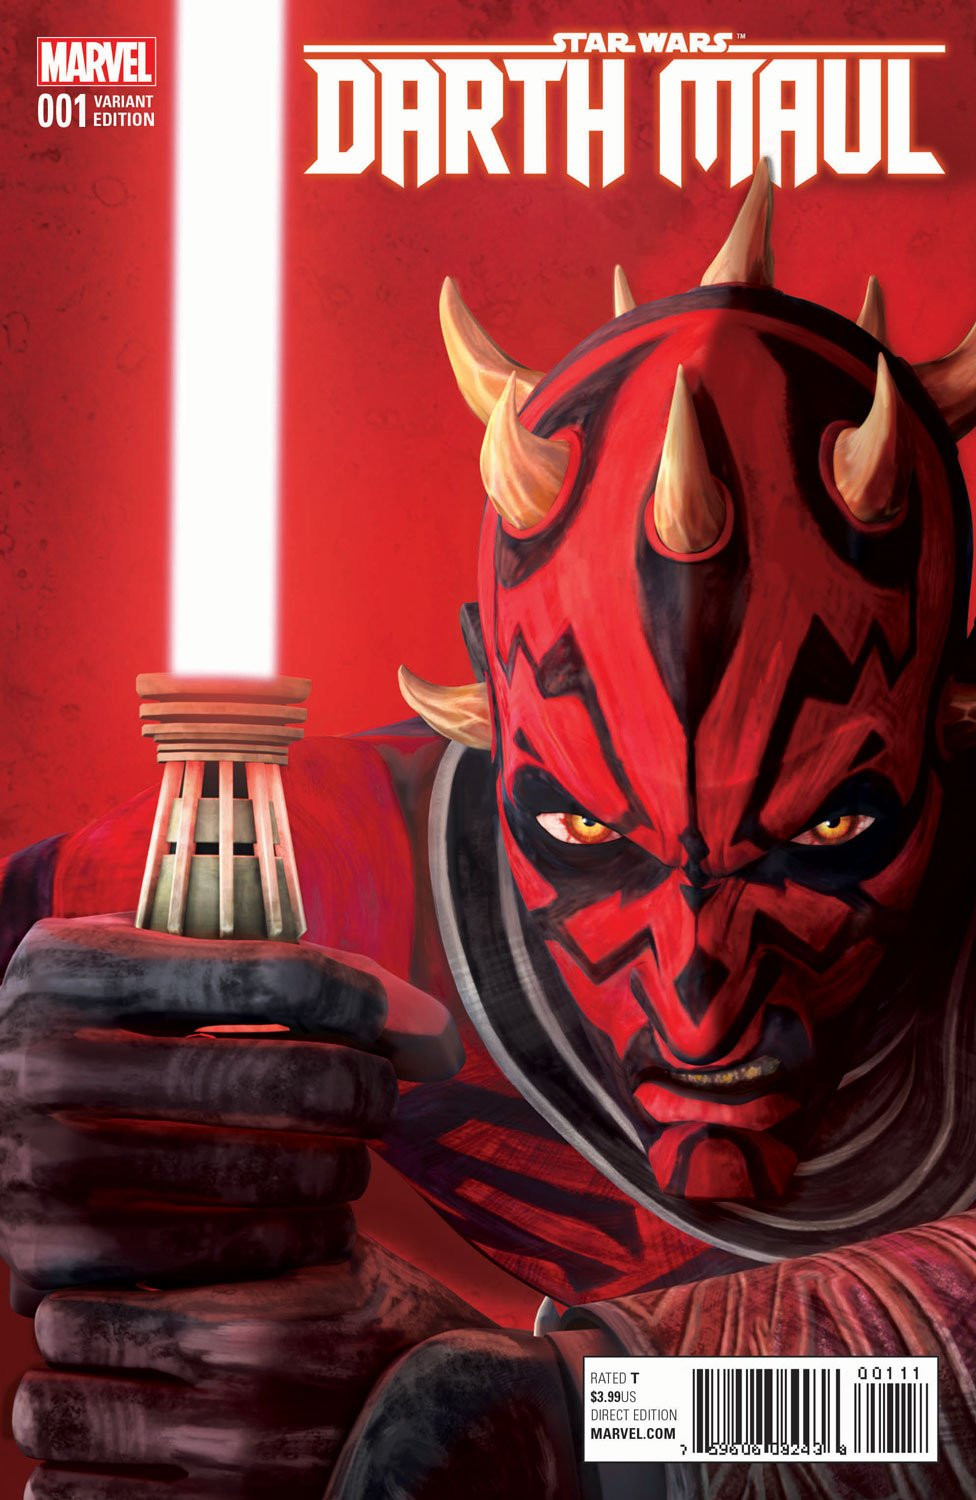 Star Wars: Darth Maul #1 Review